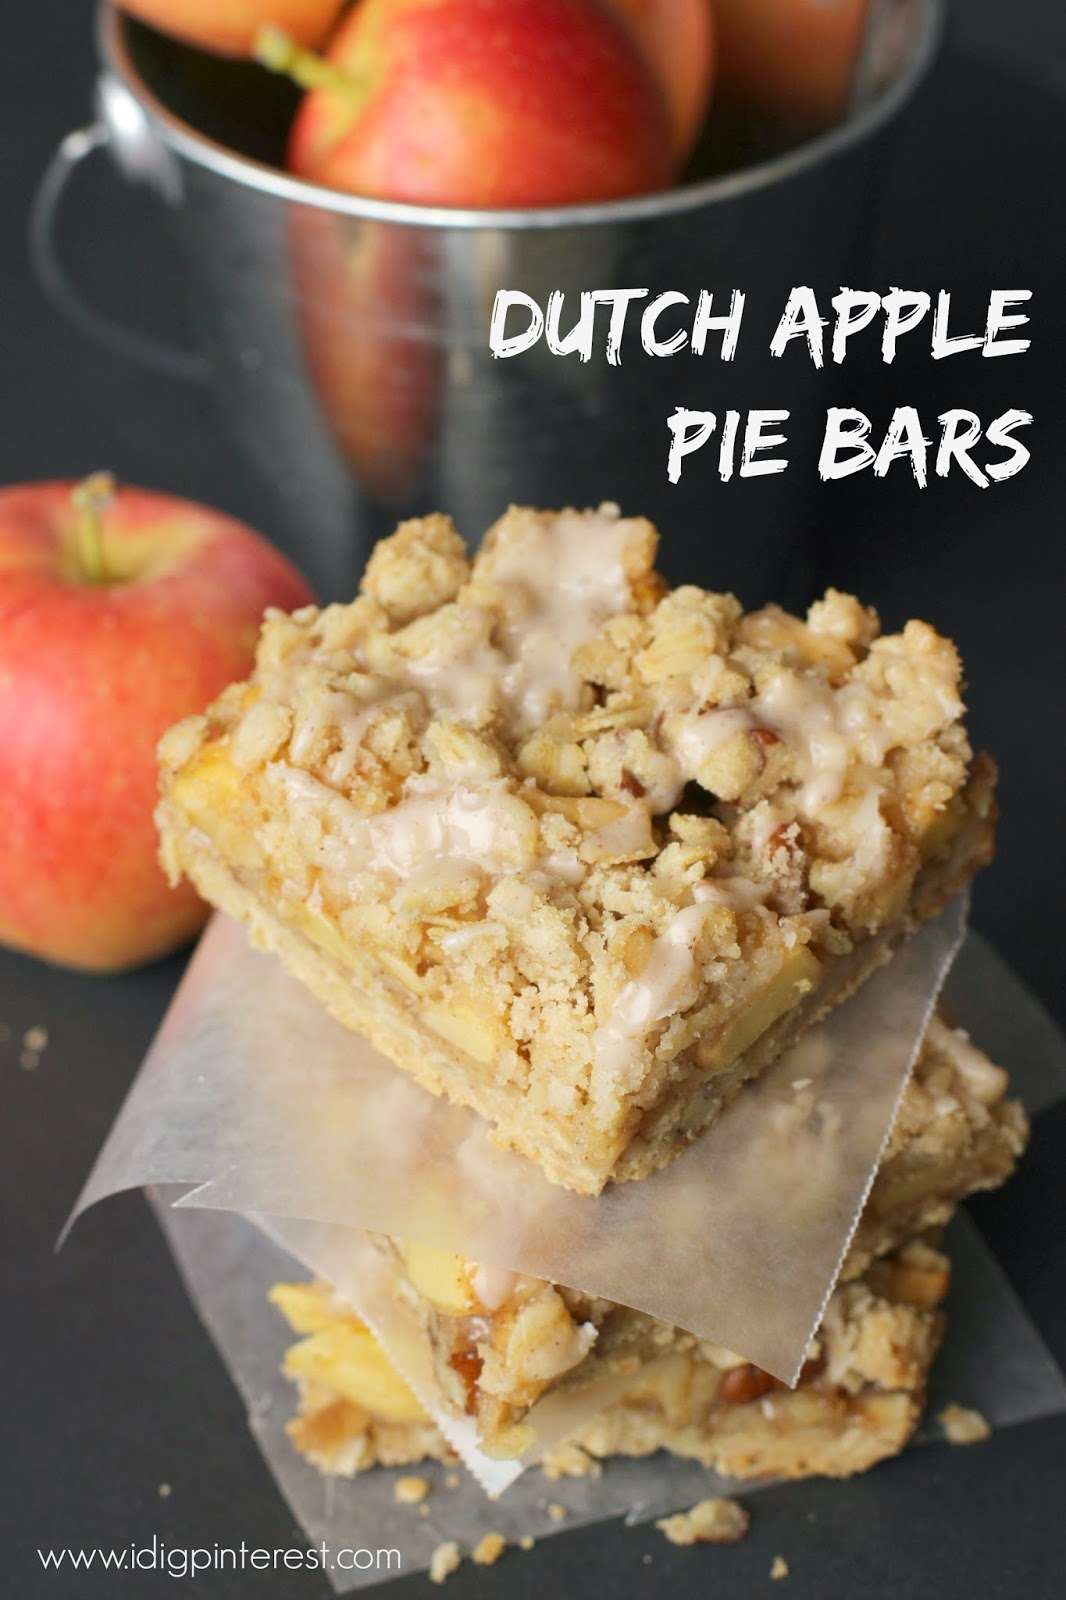 These delectable Dutch Apple Pie Bars with a tasty crumb topping and cinnamon sweet glaze are sure to have you yearning for fall and the cooler weather! #falldessert #fallrecipe #dutchapplepiebars #applepie #applebars #dutchapplerecipe #dutchappledessert